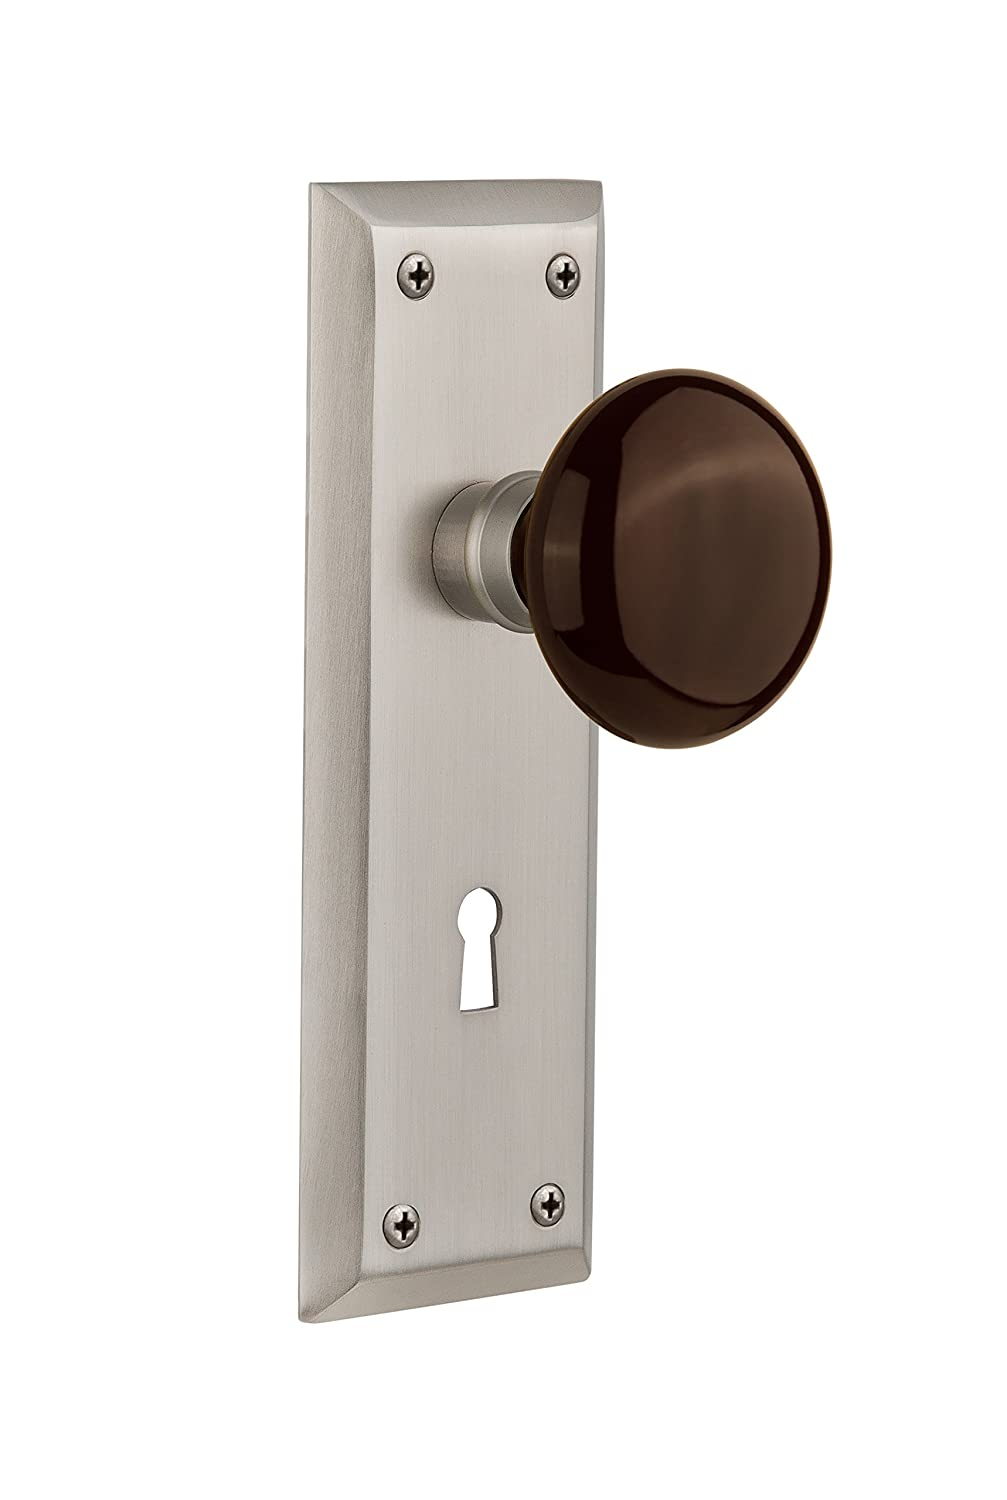 Nostalgic Warehouse New York Plate with Keyhole Brown Porcelain Knob 2.75 Timeless Bronze Privacy